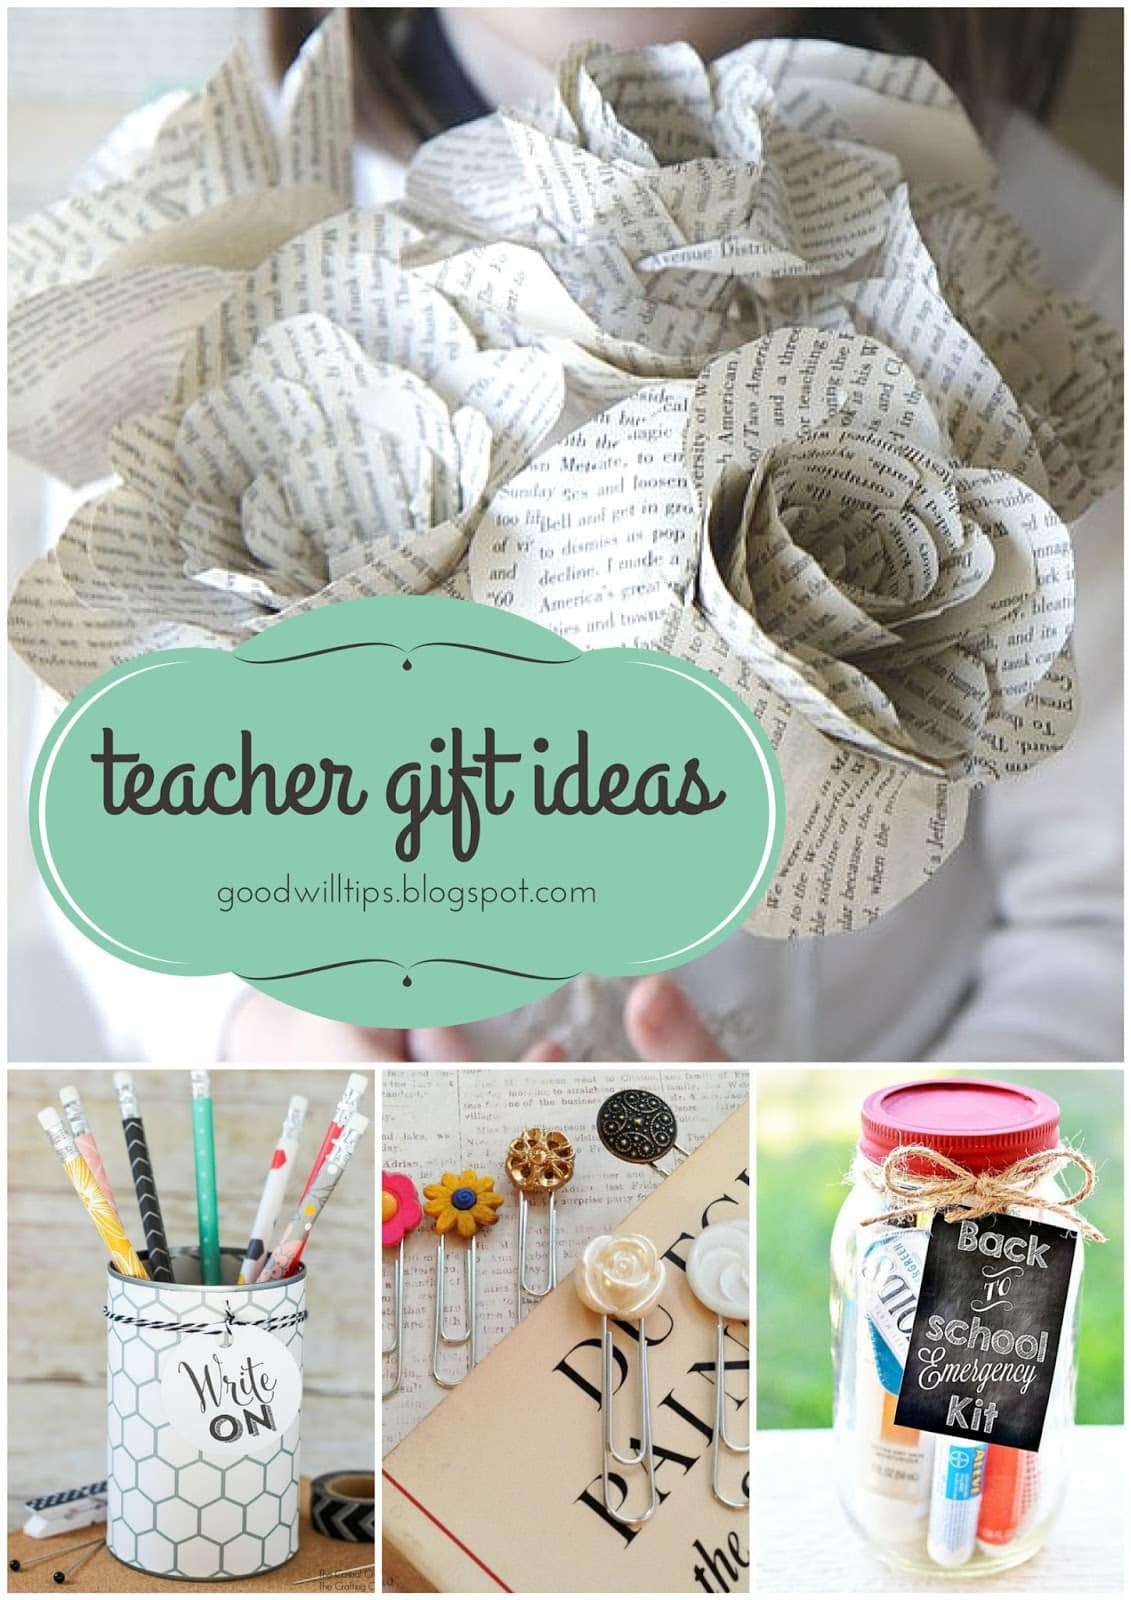 Great Teacher Gifts on Small Budgets from MomAdvice.com